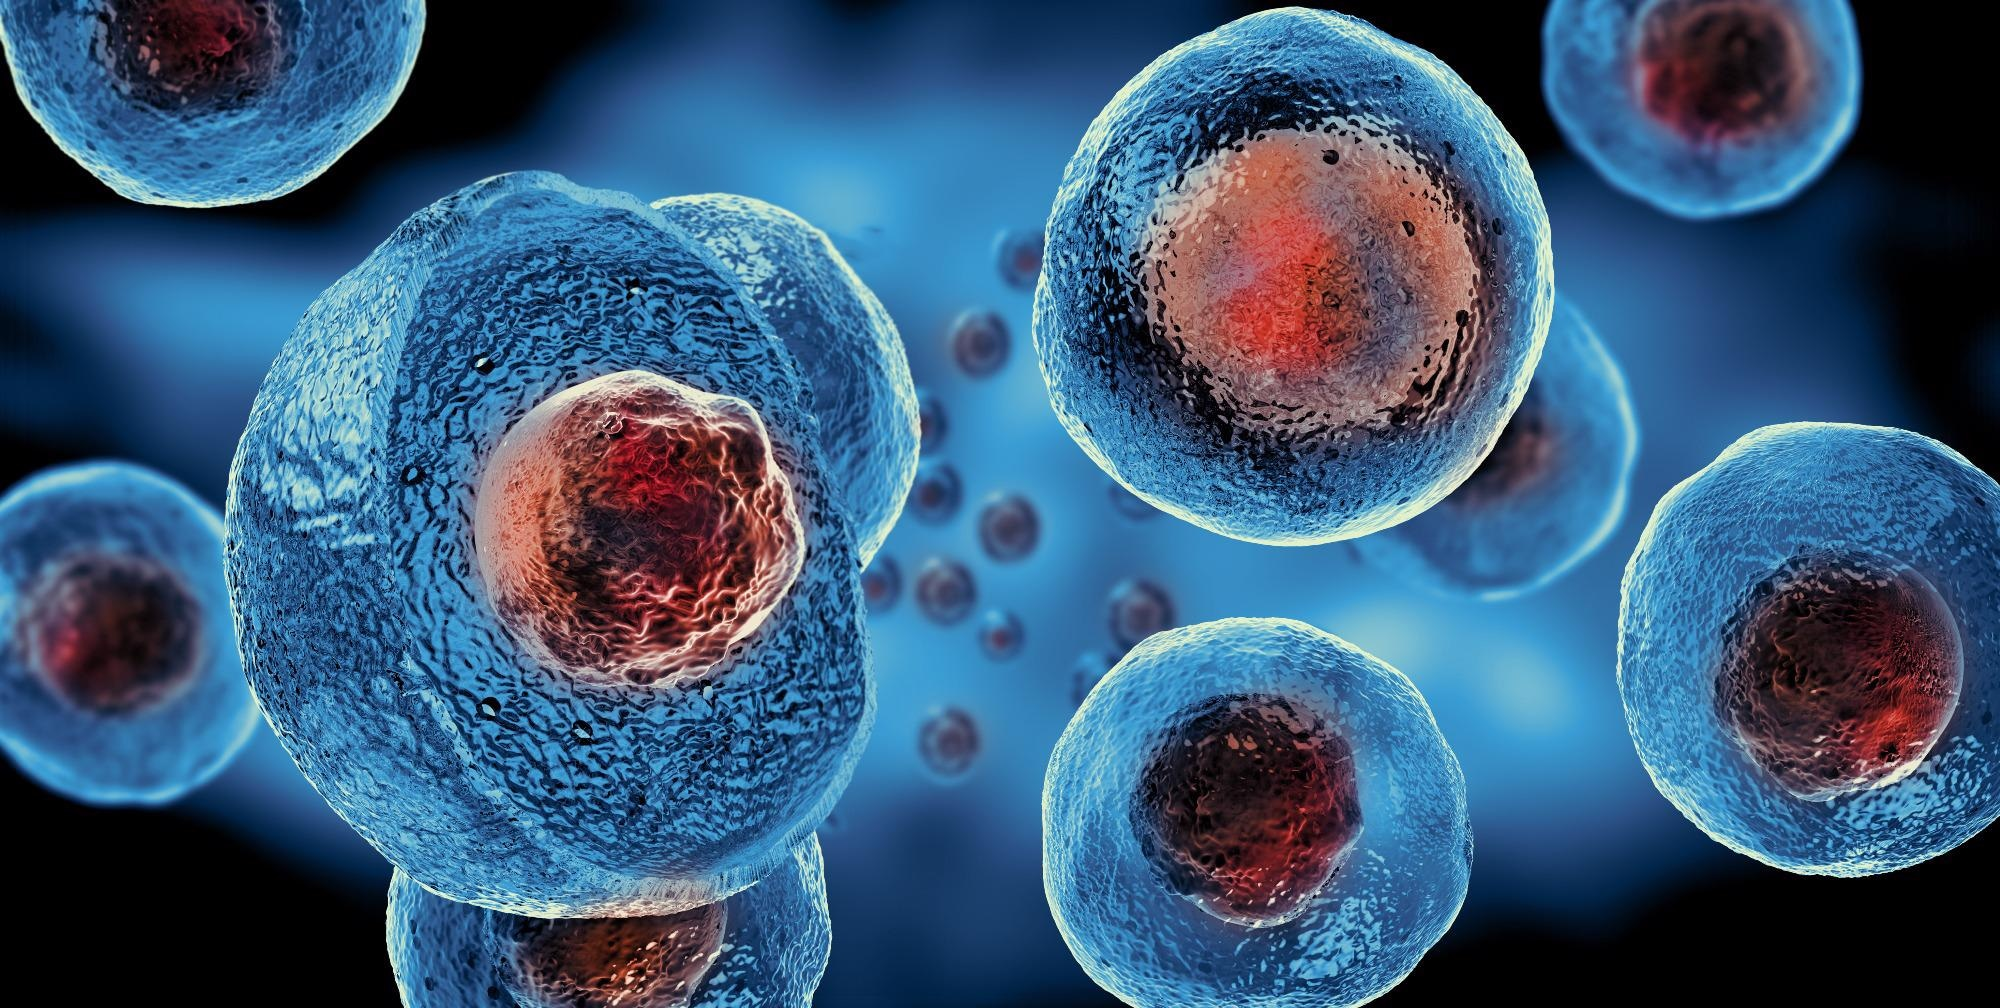 3D Printing of Stem Cells Could Enable Monitoring and Control of Neural Networks